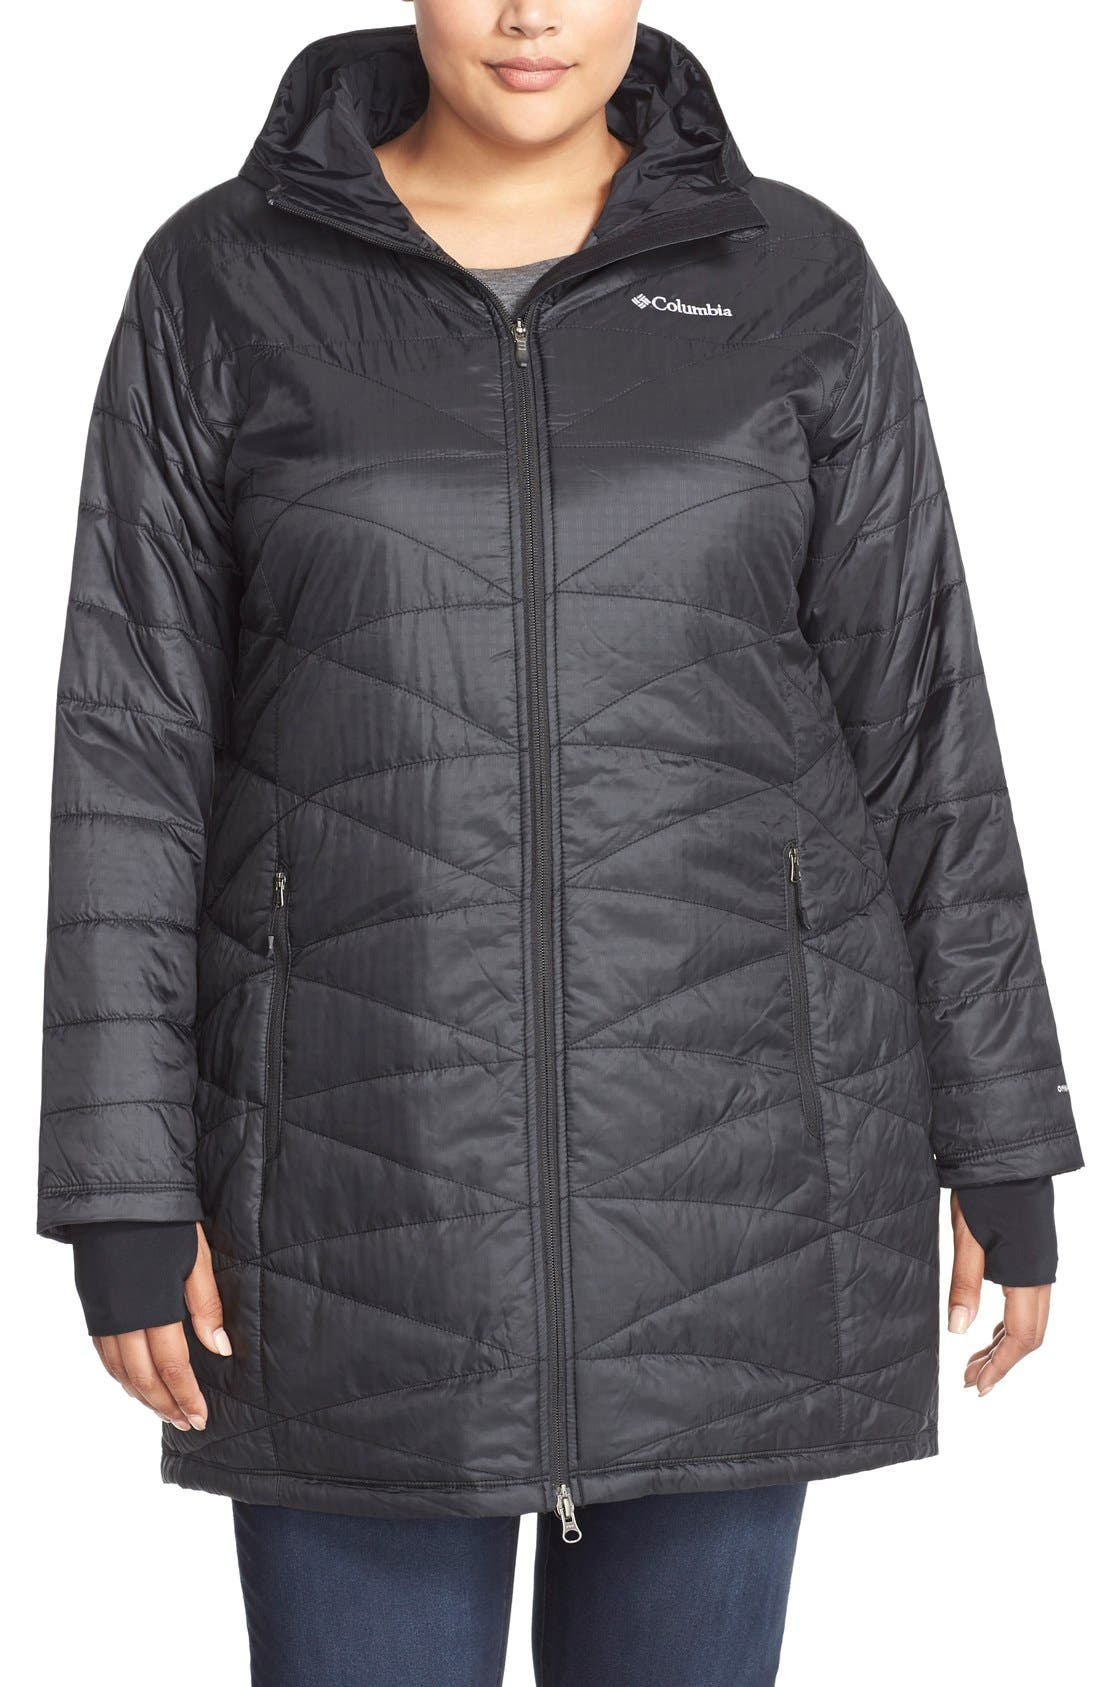 Mighty Lite Hooded Jacket,                         Main,                         color, Black